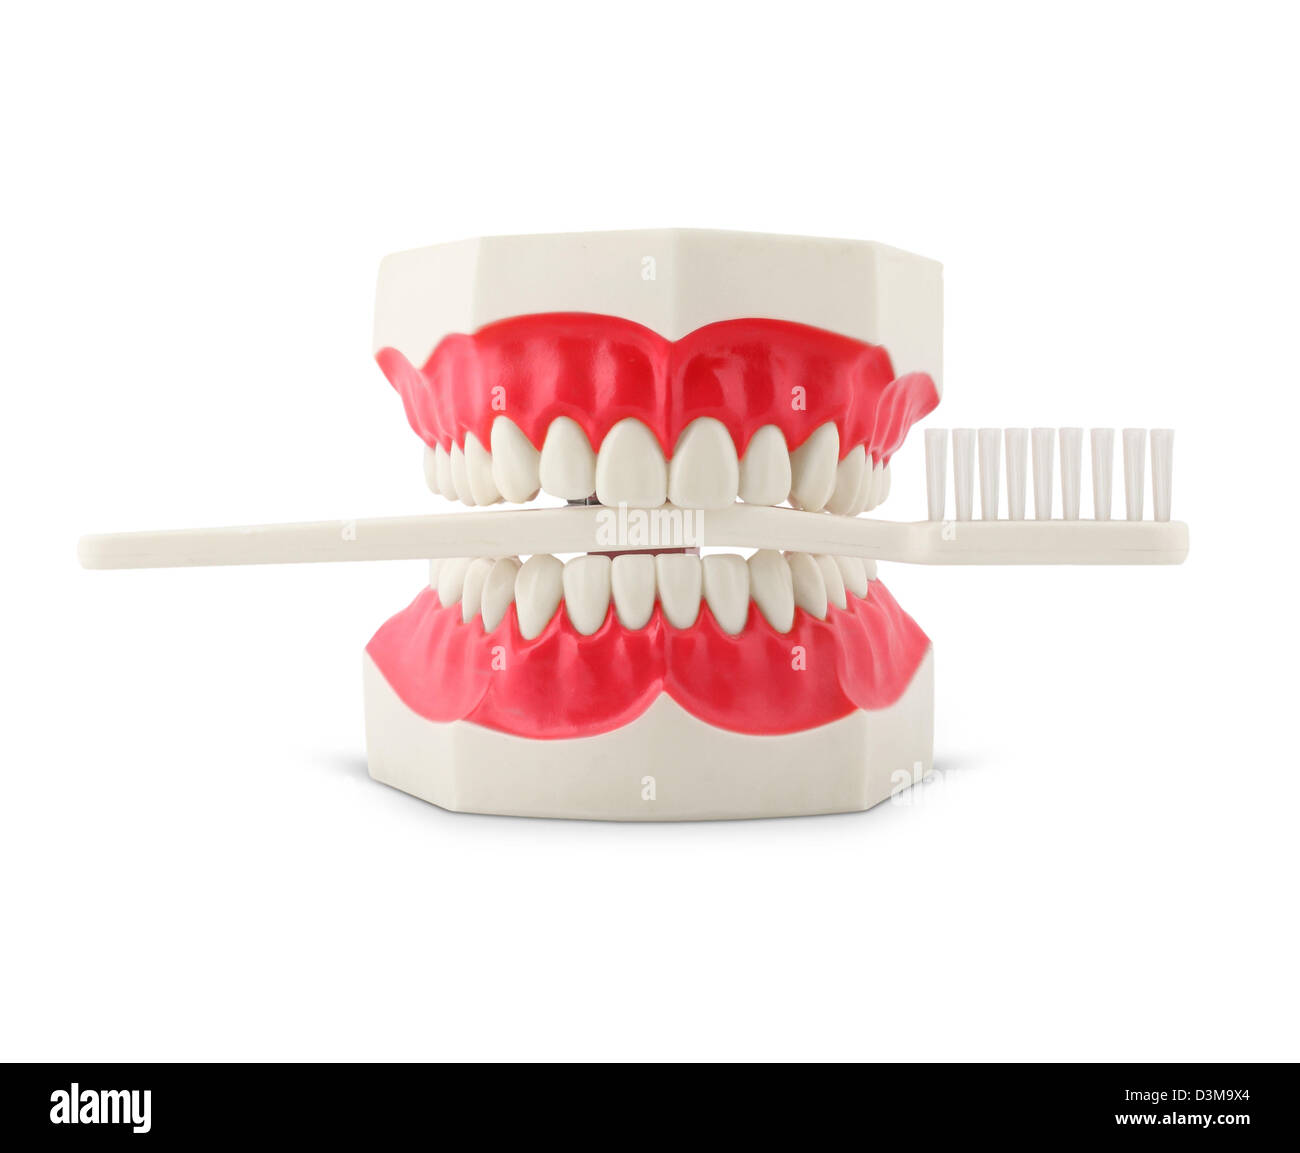 Teeth model with toothbrush isolated on white - Stock Image